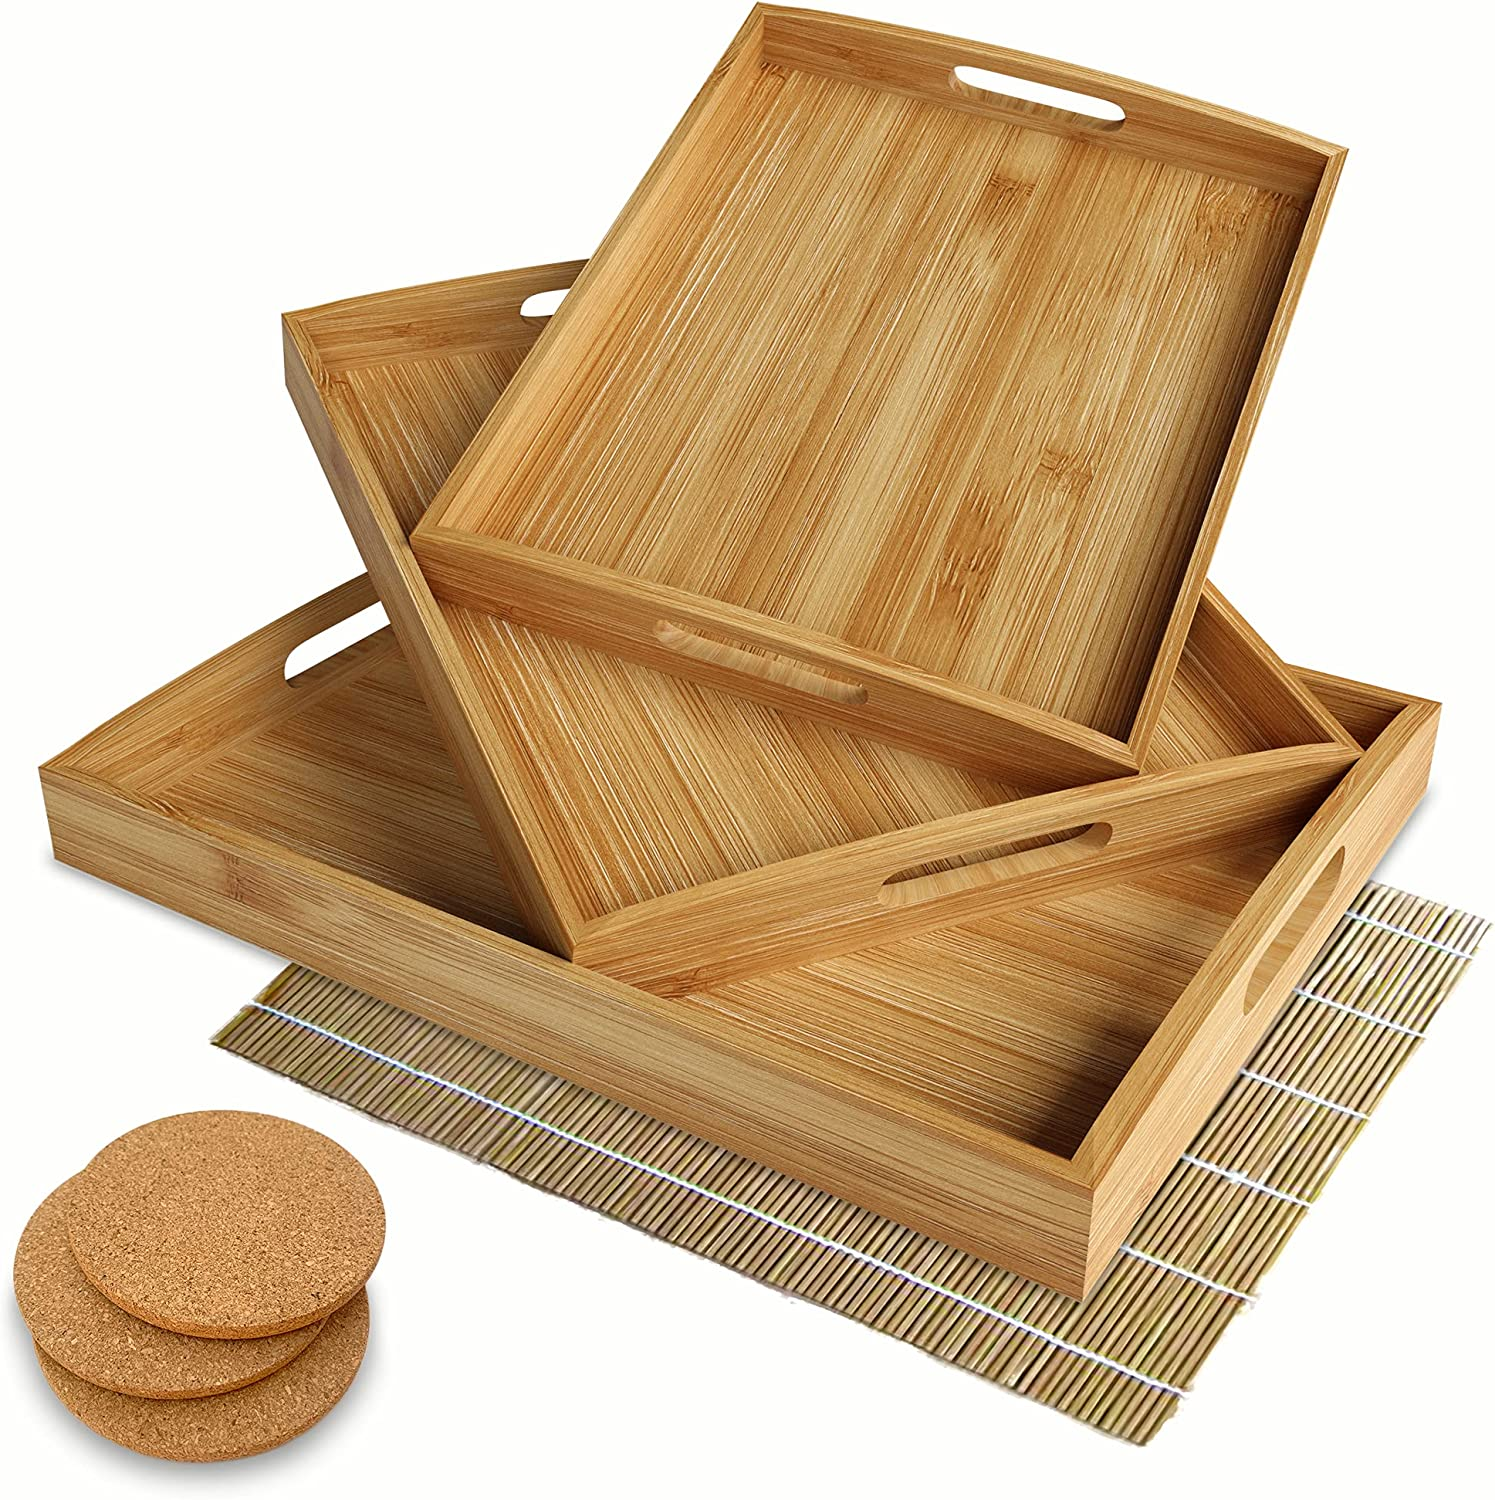 Set of 3 Large Bamboo Serving Trays – Large Serving Tray with Handles – Coffee Table Tray – Food Tray – Bed Tray